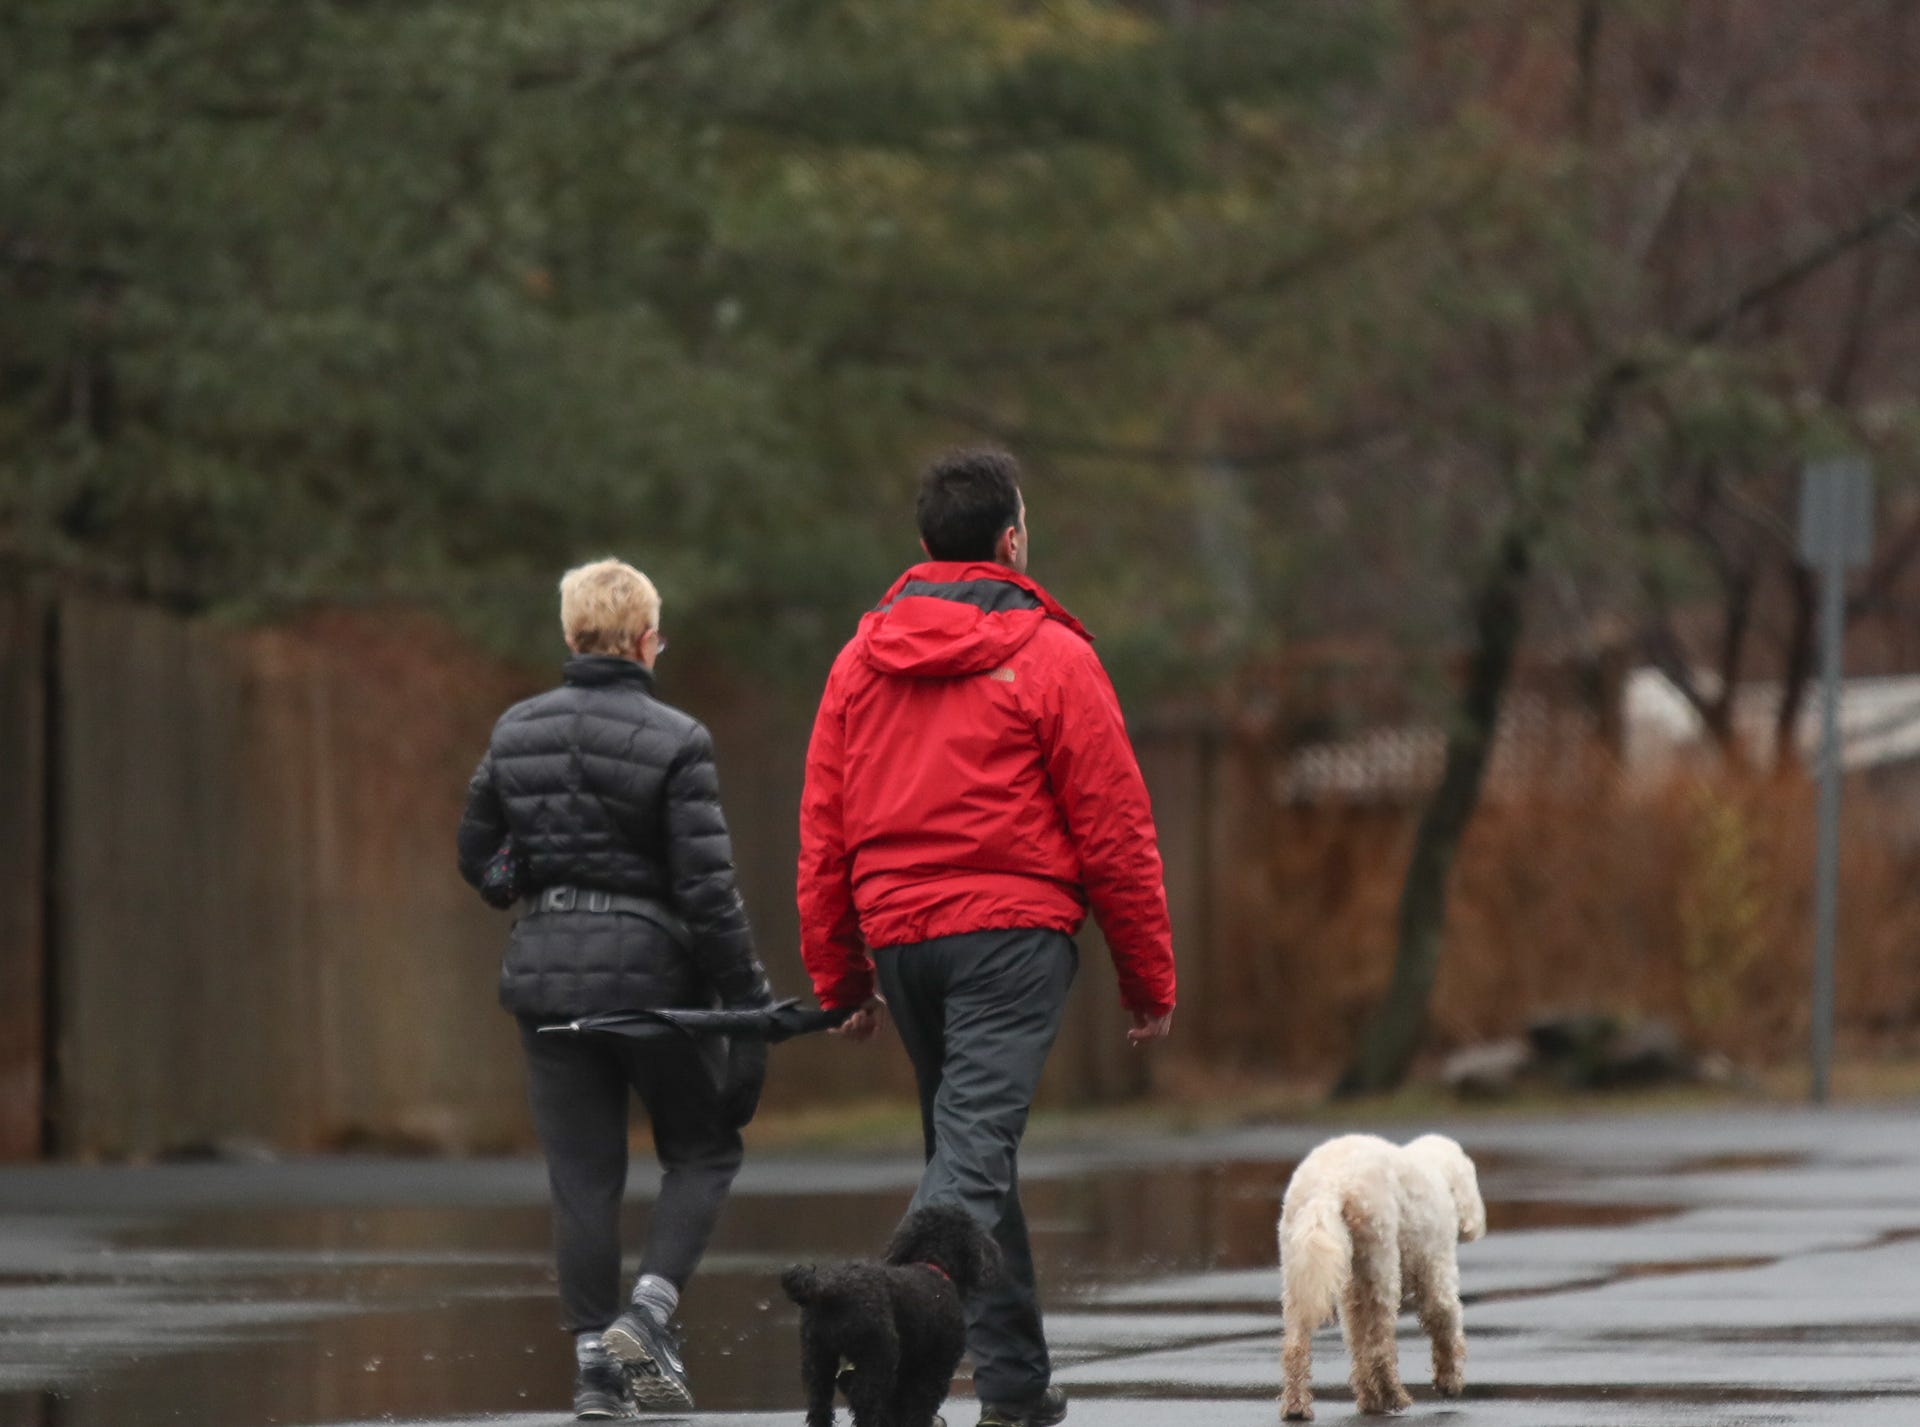 Residents are out walking their dogs in Piermont on Sunday, January 20, 2019.